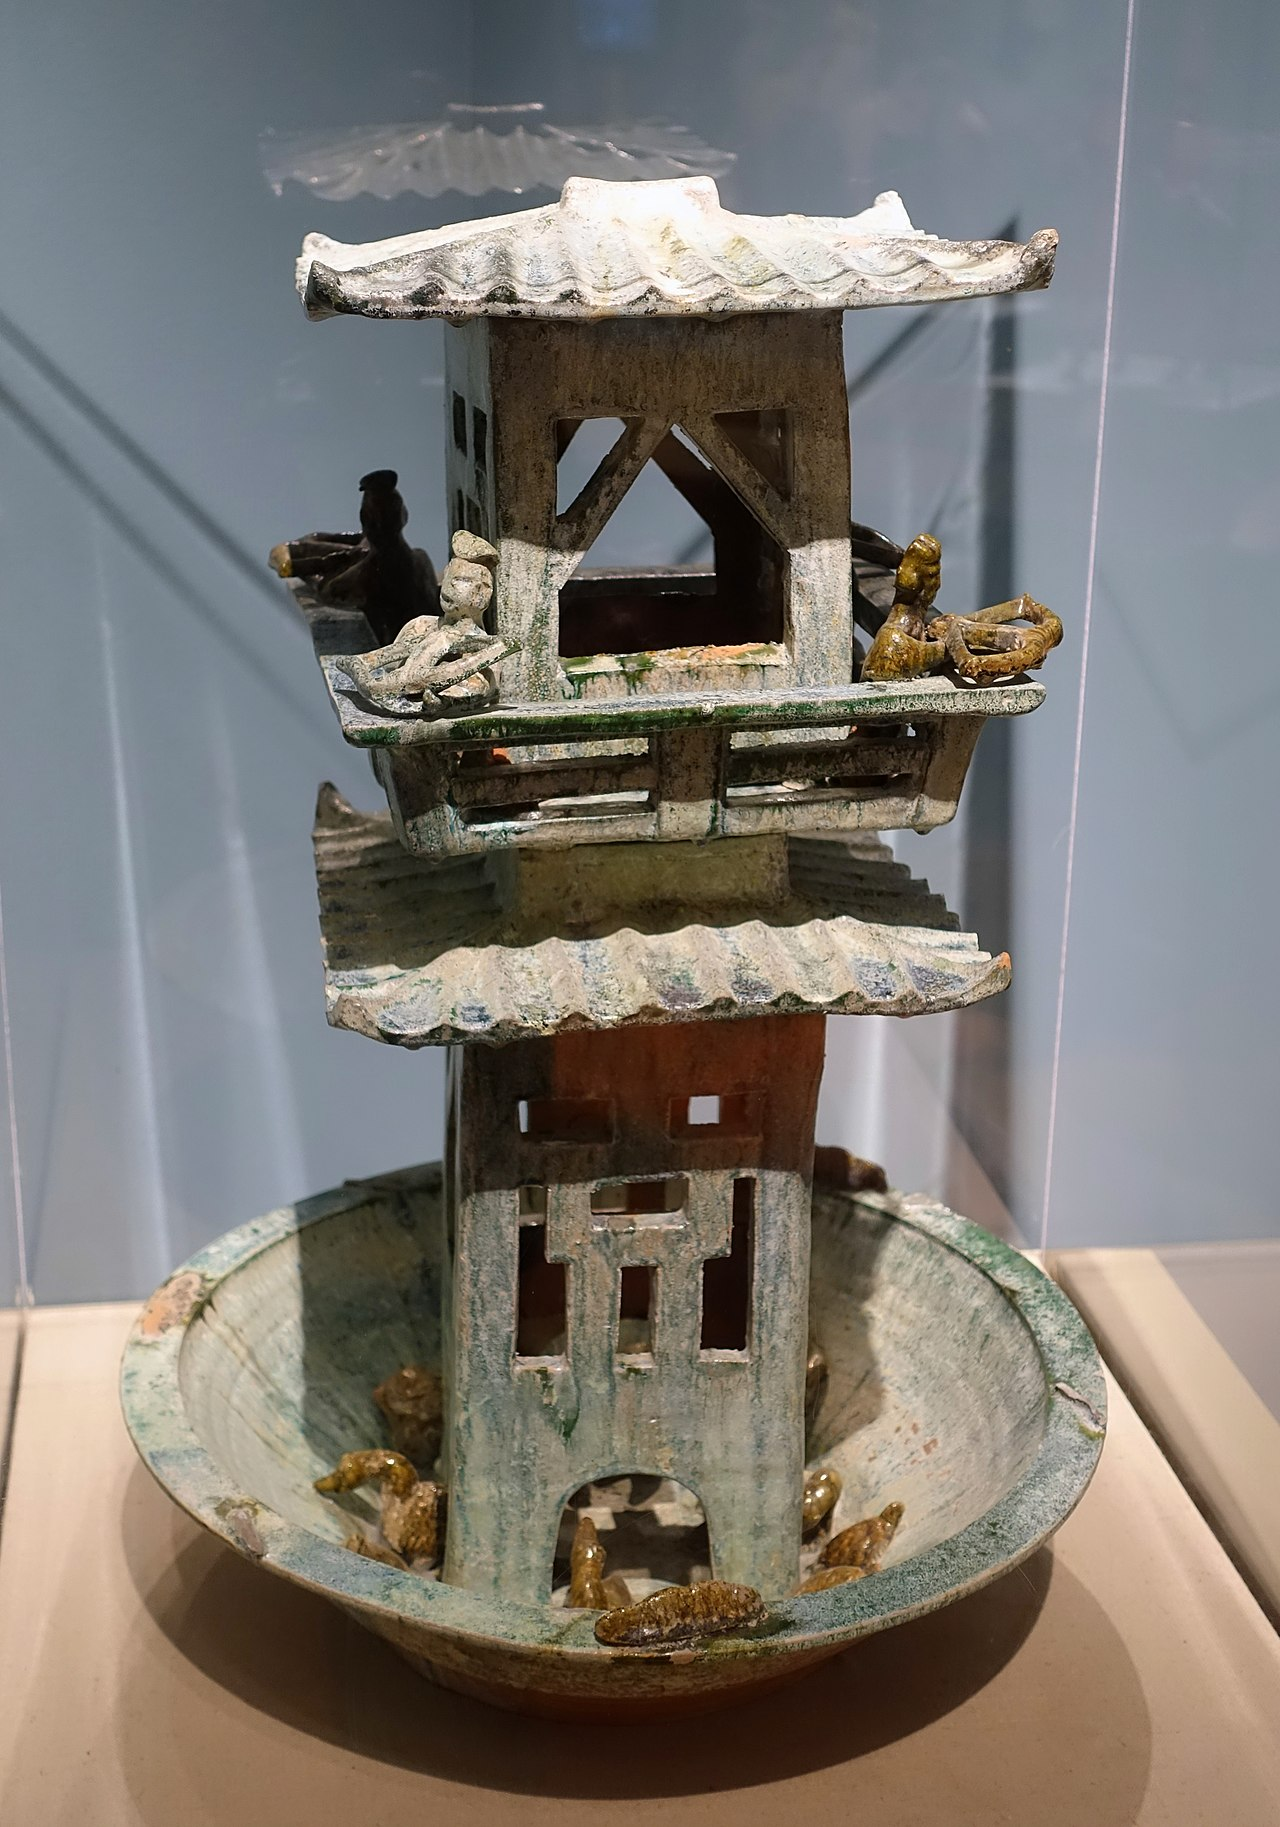 Tower with archers, China, Han dynasty, 206 BC to 220 AD, glazed terracotta - Middlebury College Museum of Art - Middlebury, VT - DSC08205.jpg